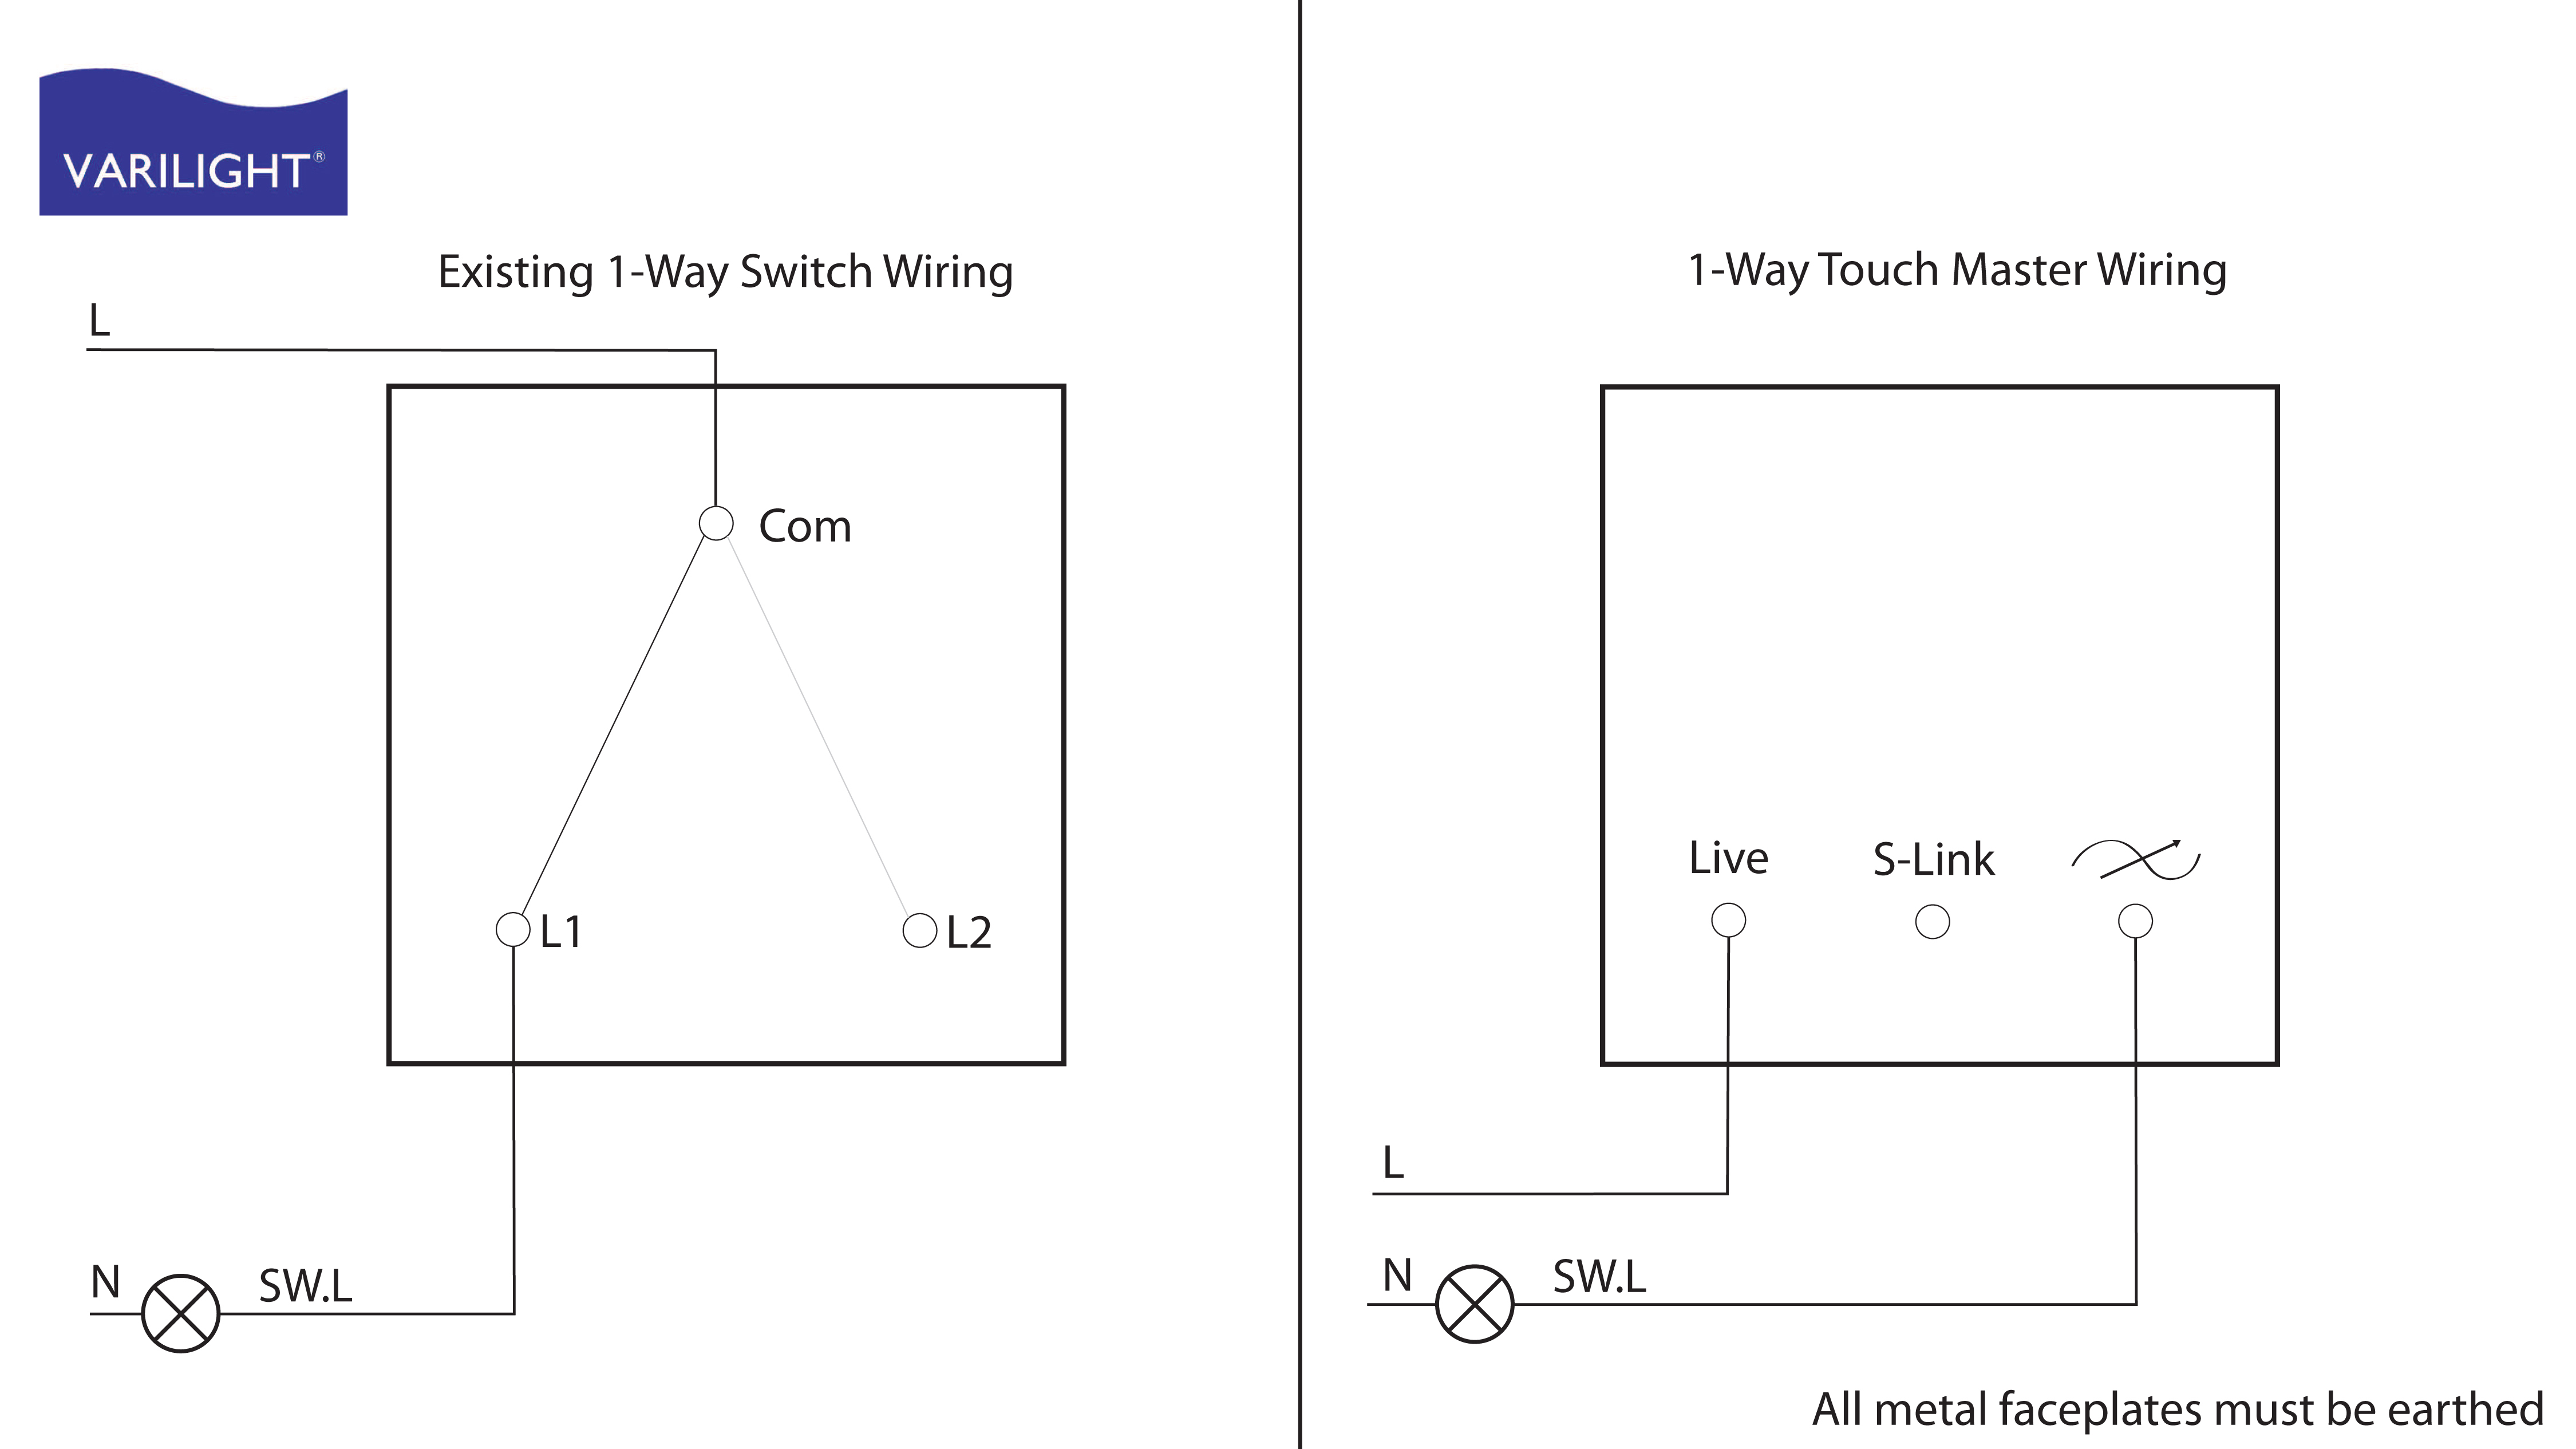 How To Wire Your Zooz Switch In A 3 Way Configuration